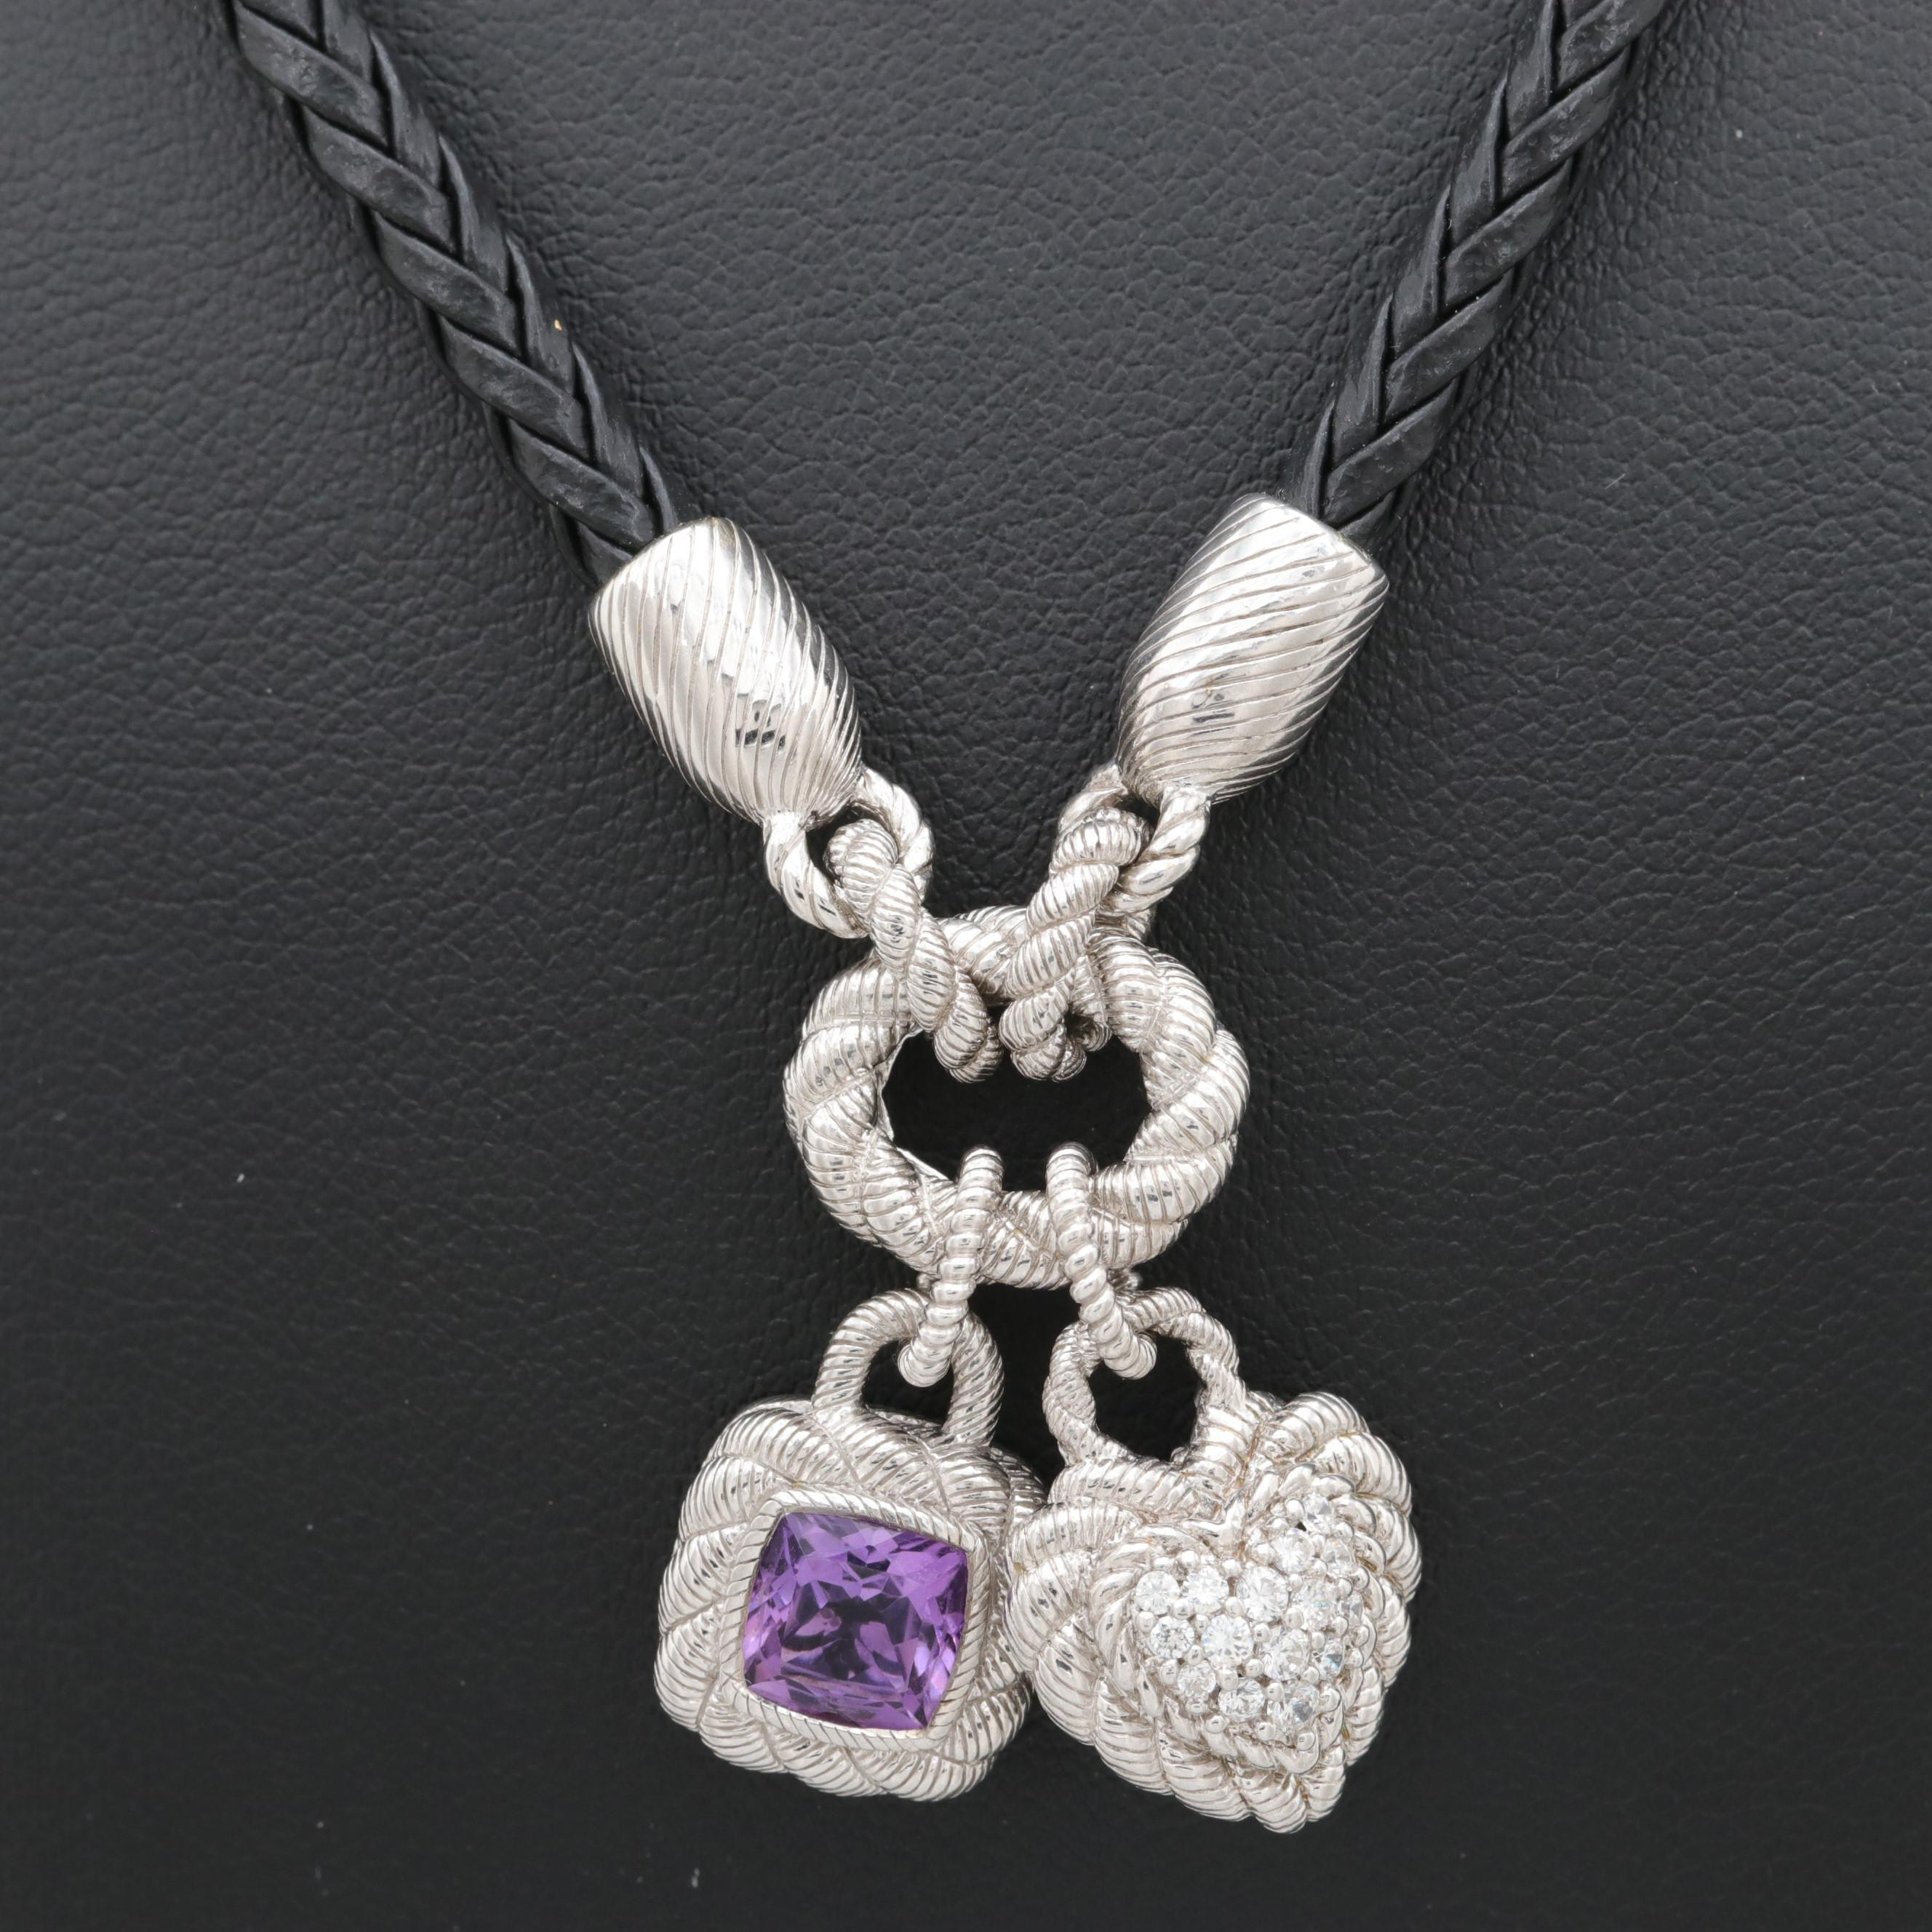 Sterling Silver Amethyst and Cubic Zirconia Charm Necklace